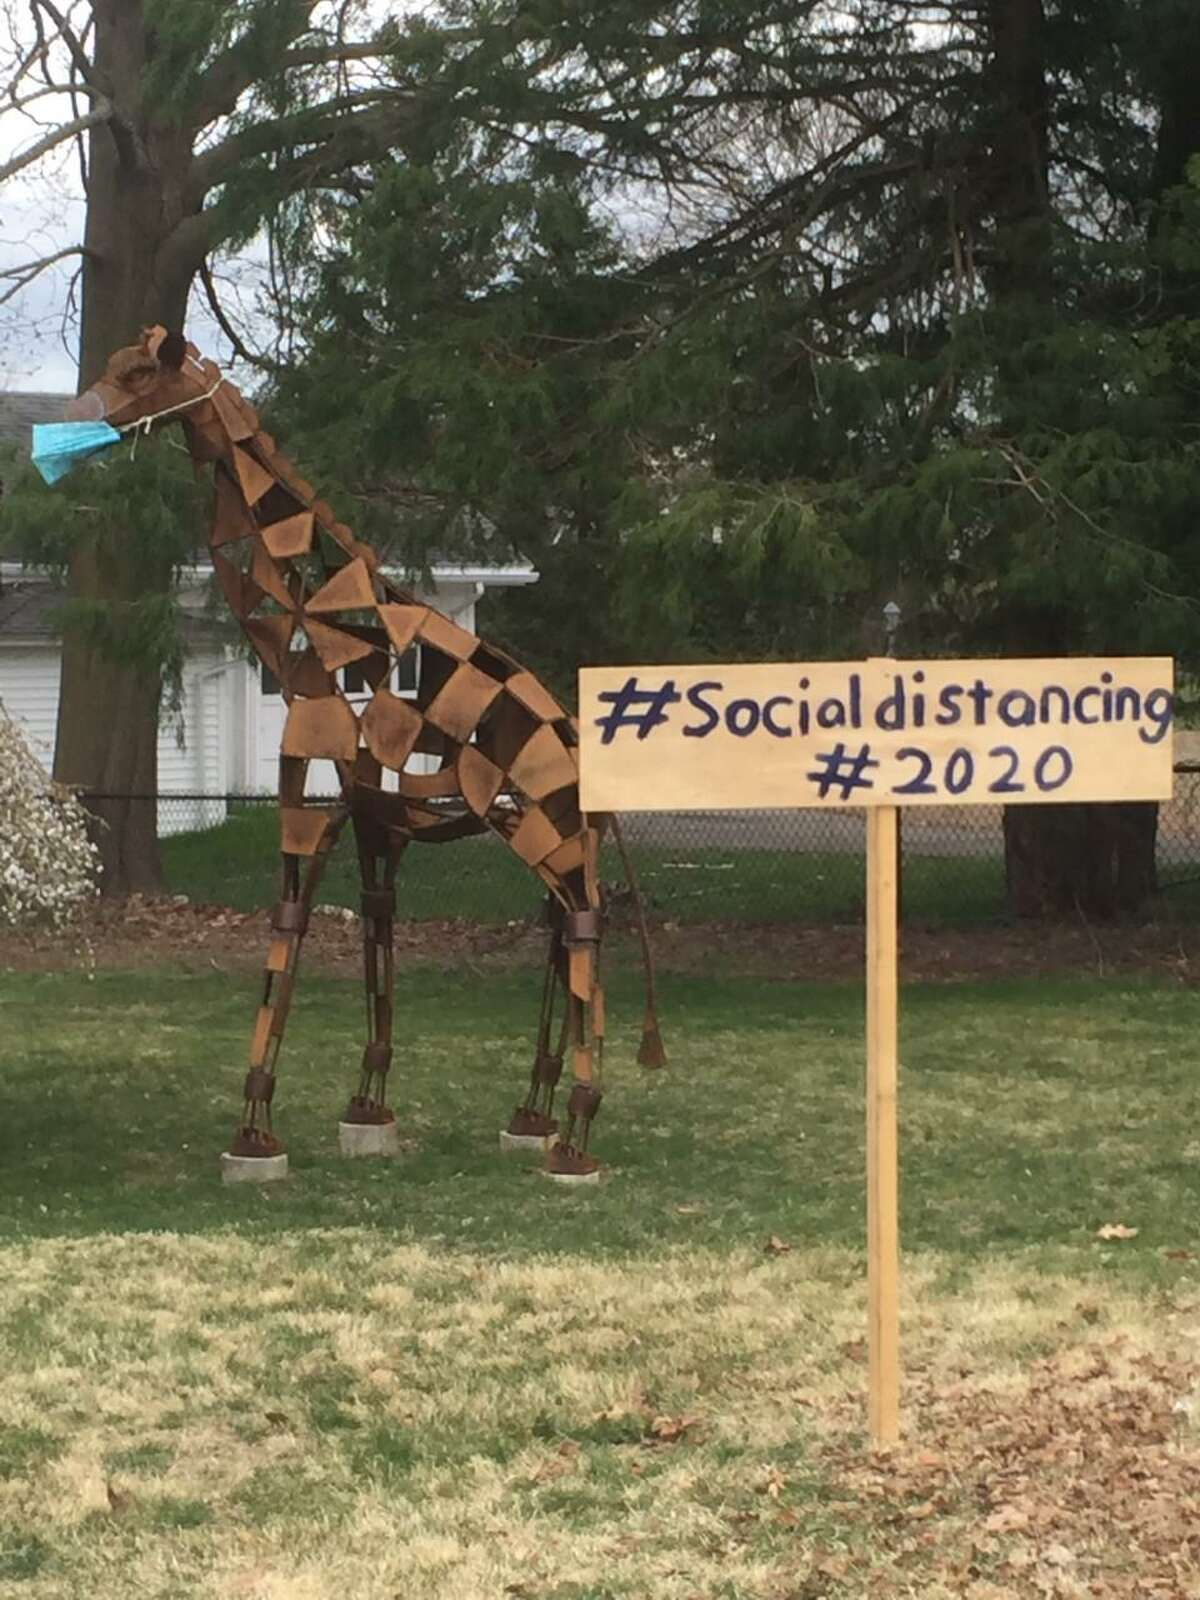 A giraffe wearing a mask was spotted on Main Street with a sign #Social Distancing #2020.